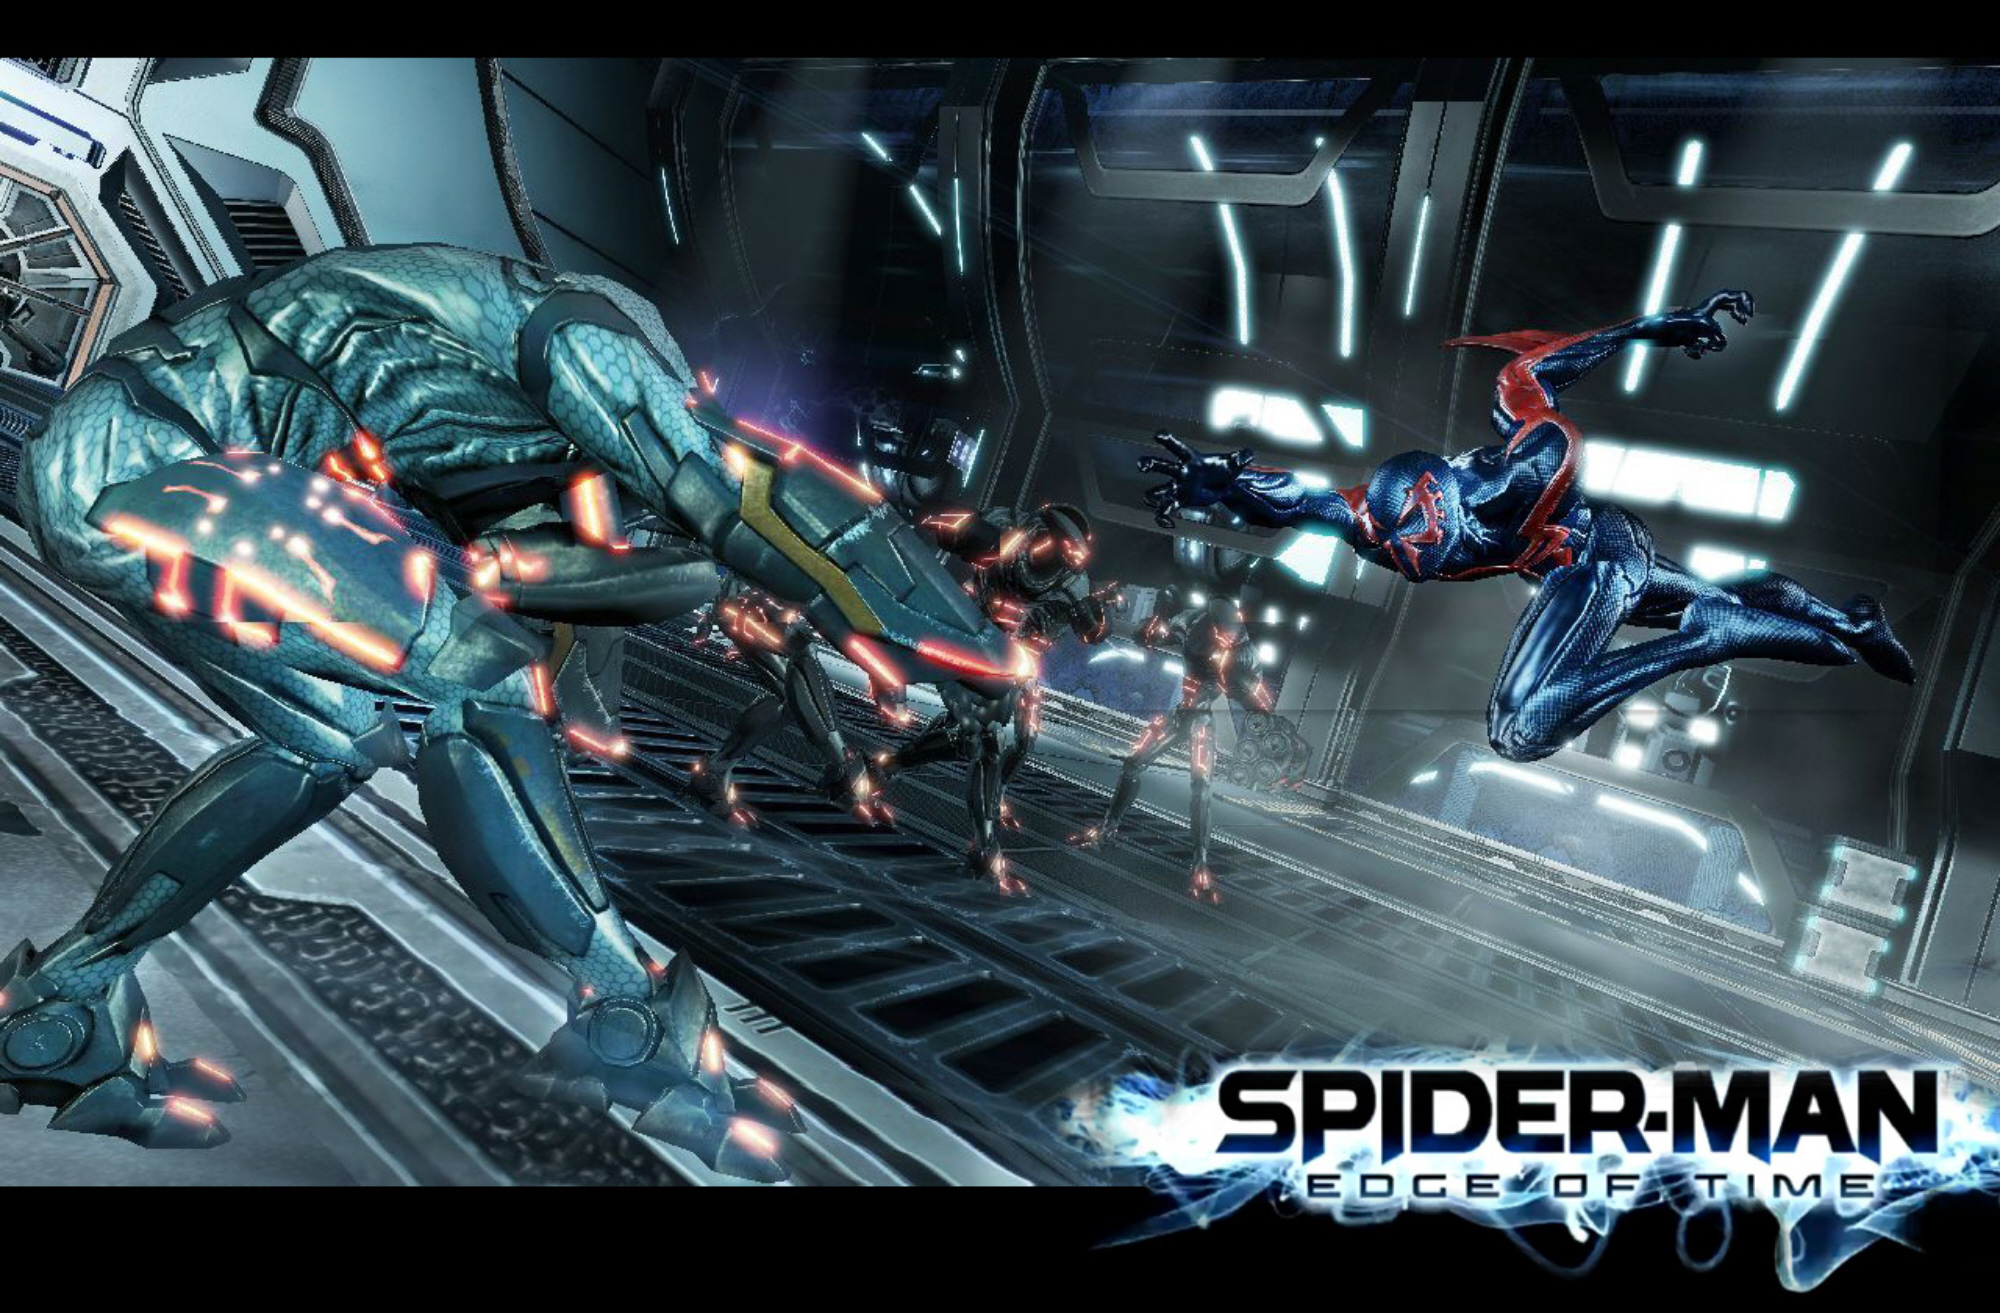 10 Best Spider Man 2099 Wallpaper Full Hd 1080p For Pc: Spider-Man: Edge Of Time 2099 Wallpaper